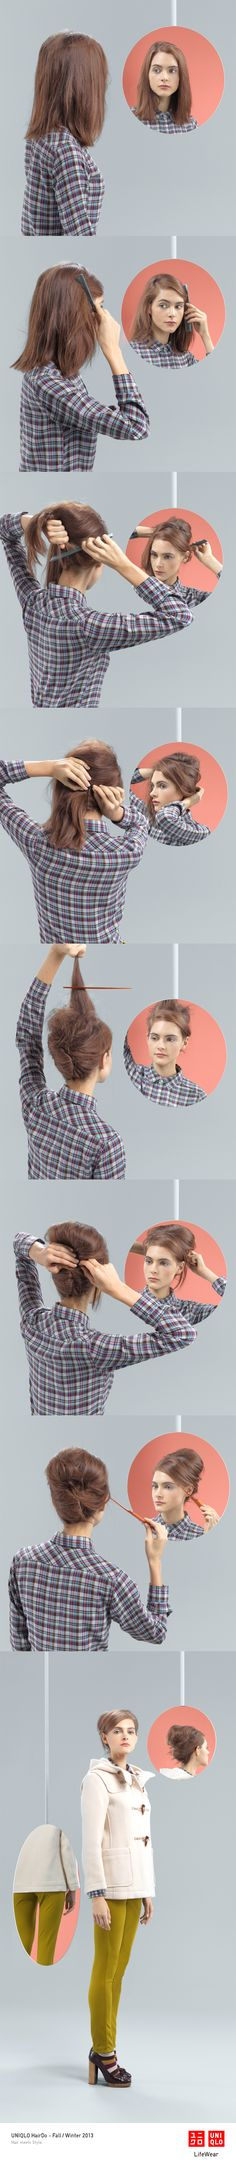 The Side Beehive #UpDo #Hair #Hairstyle #DIY #UNIQLO #HairDo @UNIQLO